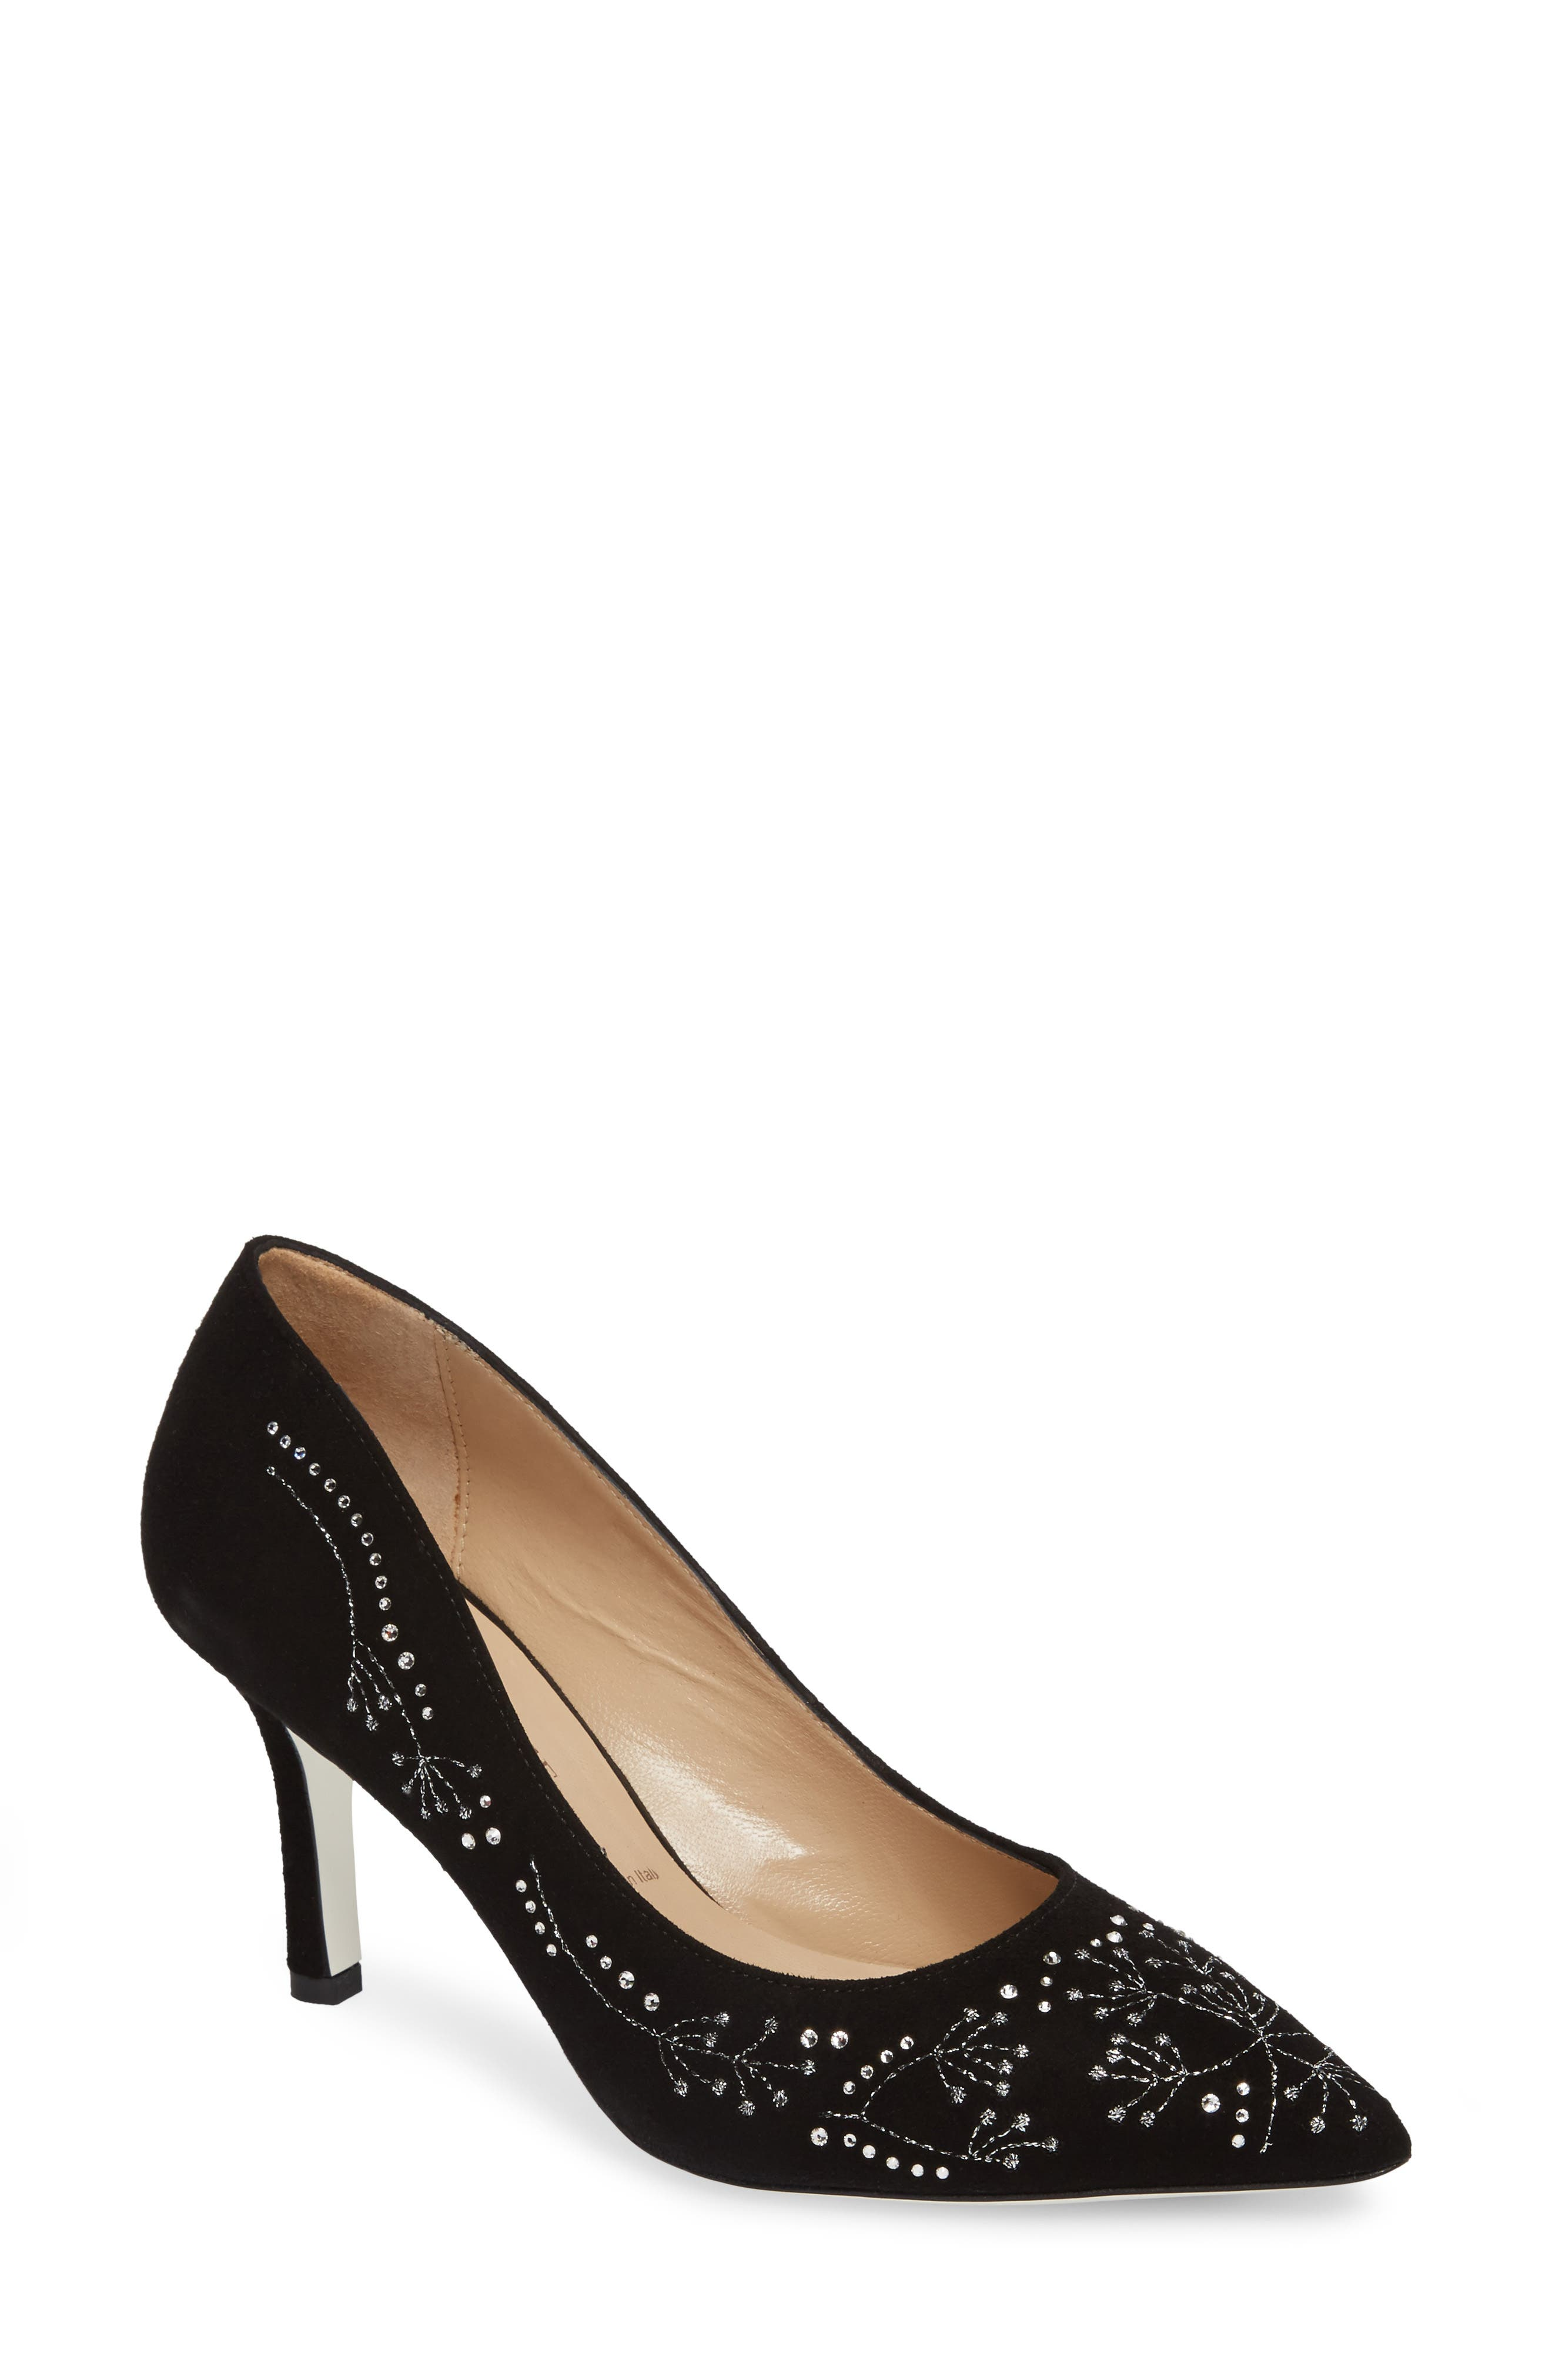 Carla Crystal Embellished Pump,                         Main,                         color, 001